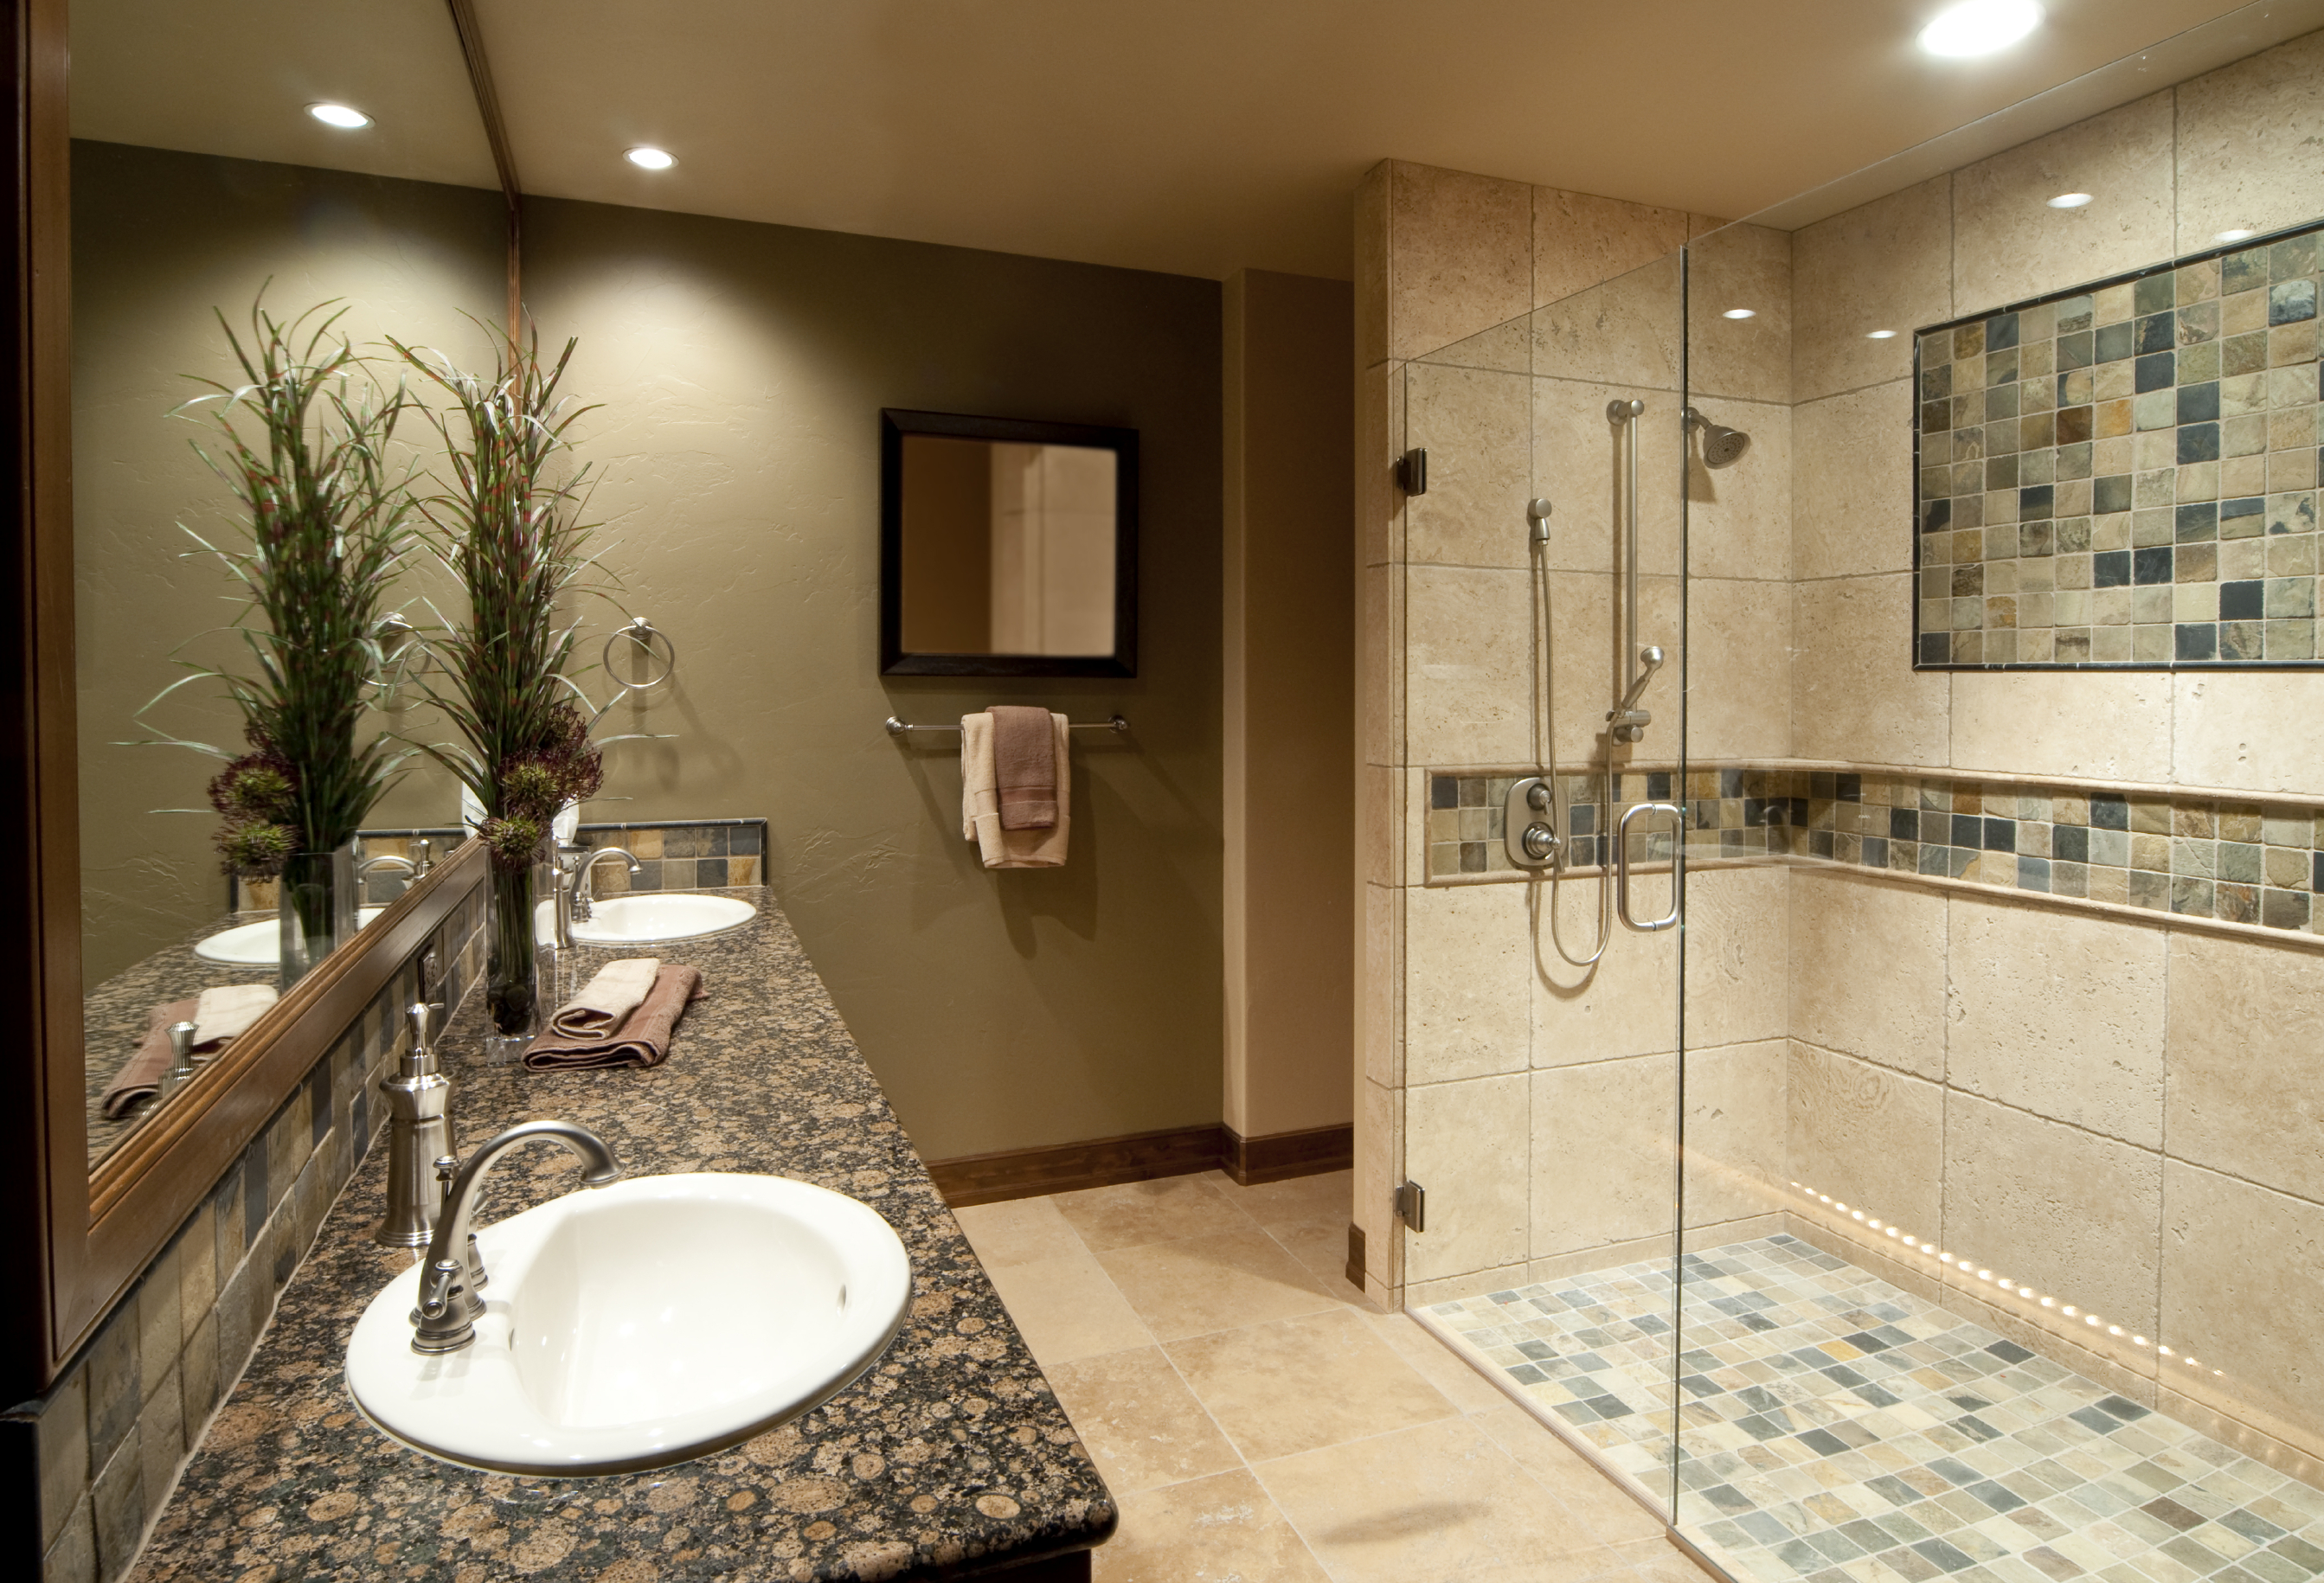 design planners build your remodeling bathroom pros point remodels for new nj price jersey from